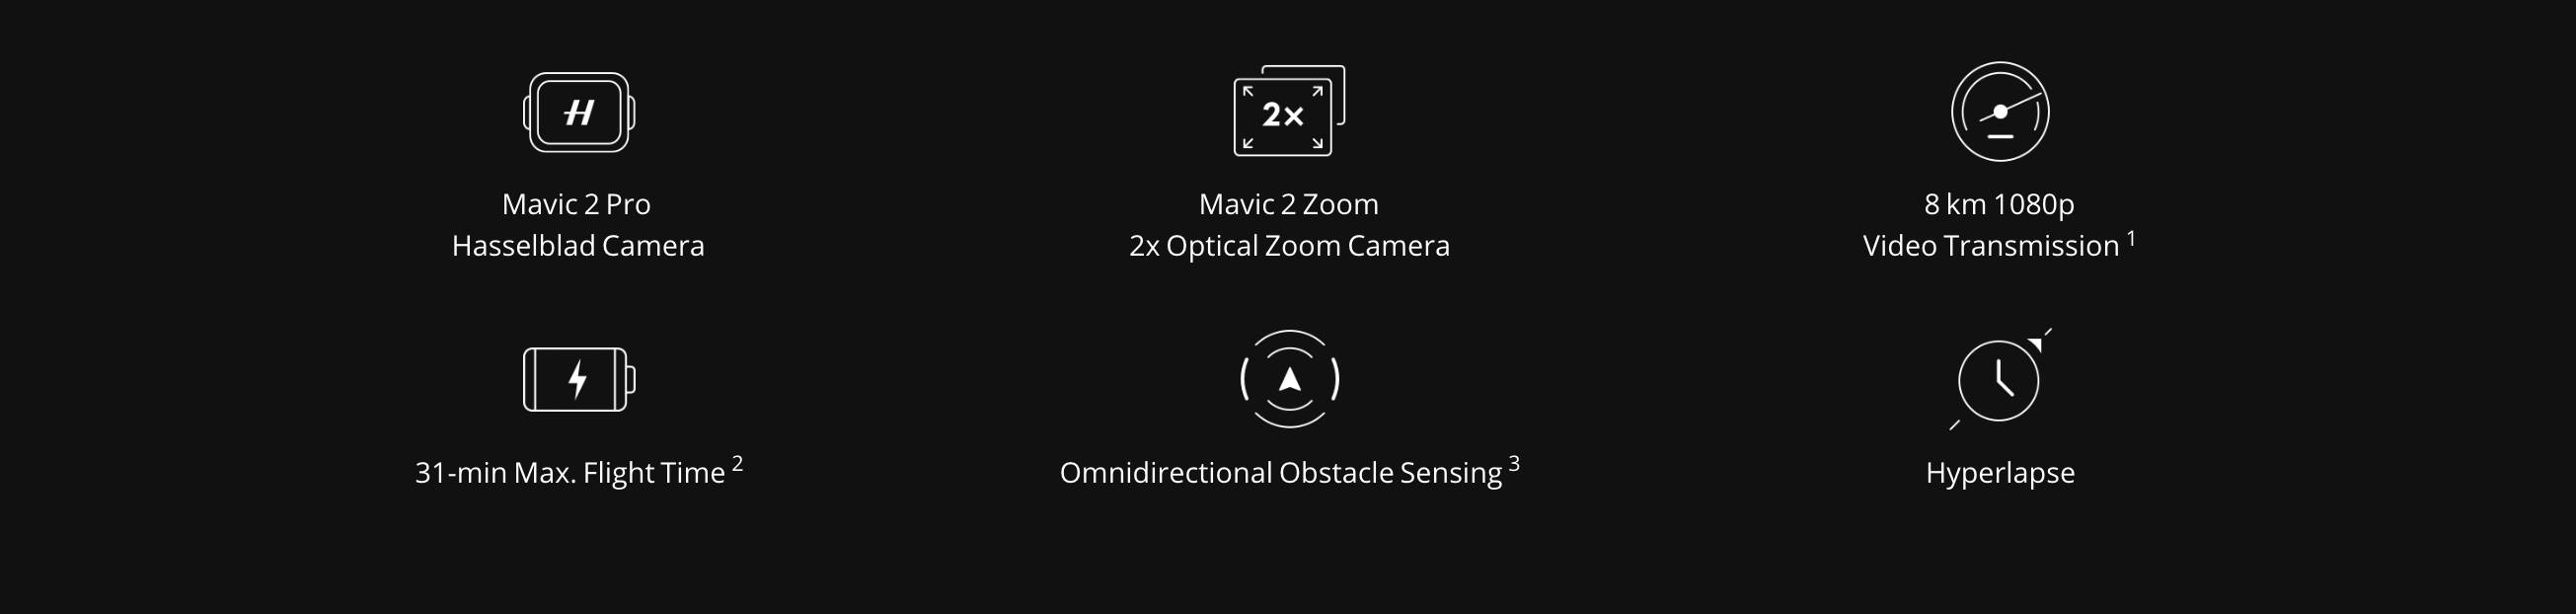 Mavic 2 Pro Mavic 2 Zoom Features